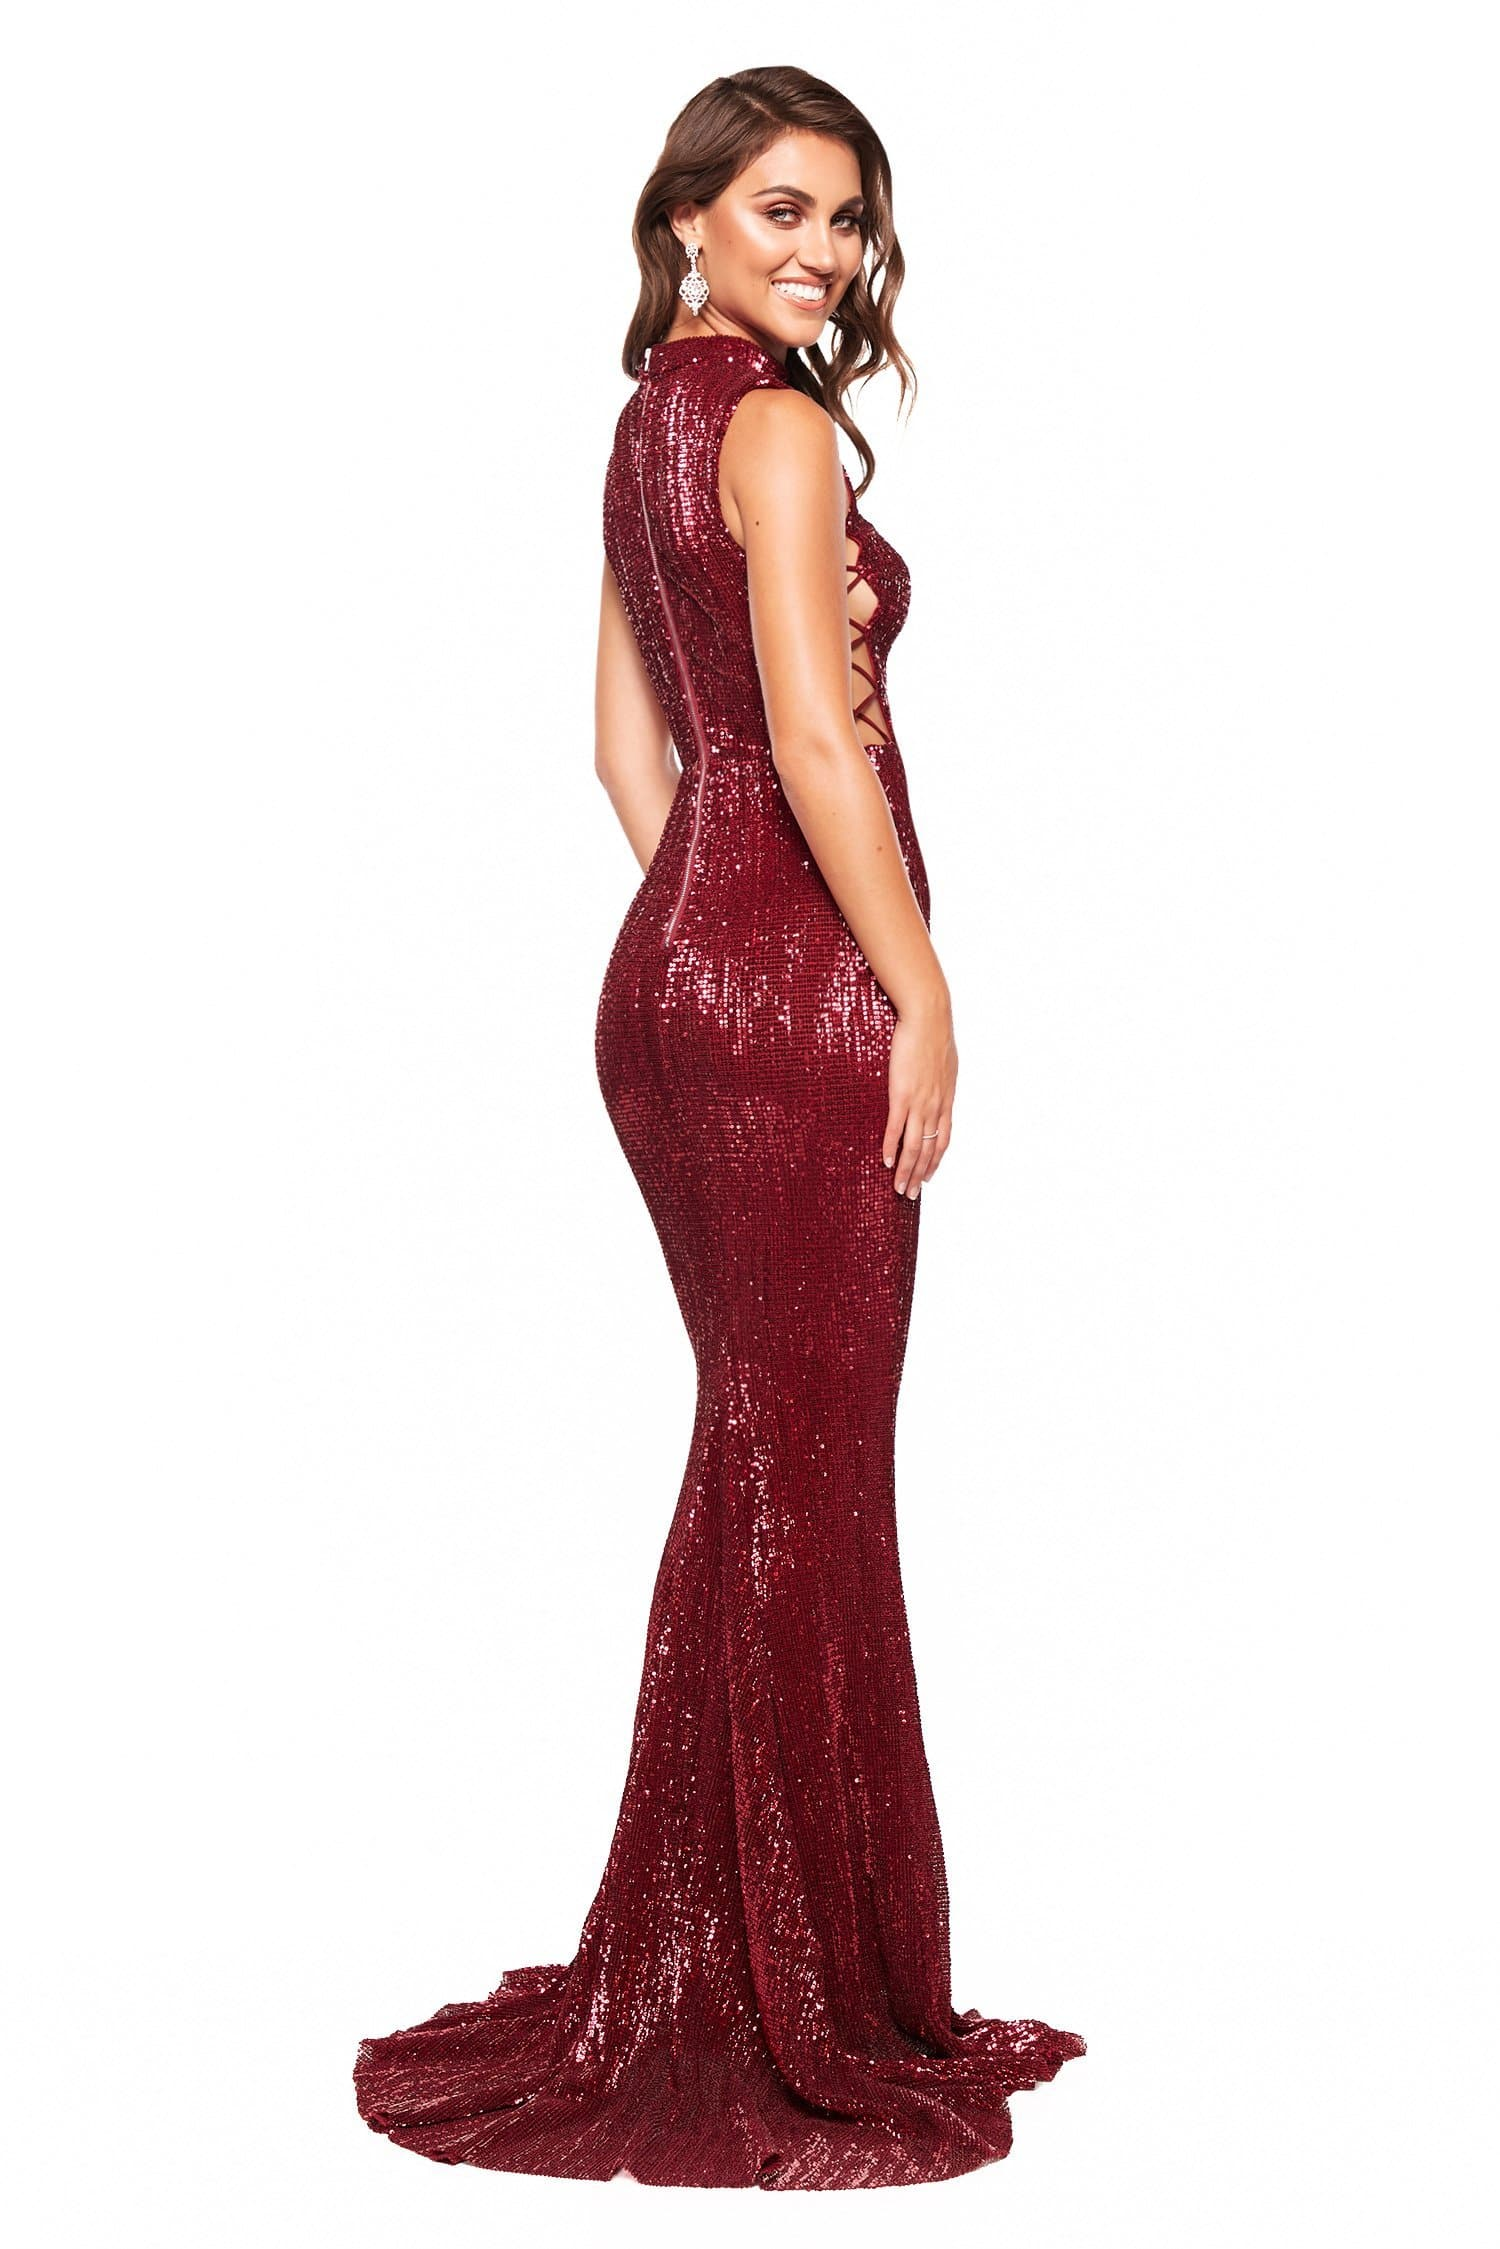 A&N Harper - Burgundy Sequin High Neck Gown with Criss-Cross Sides